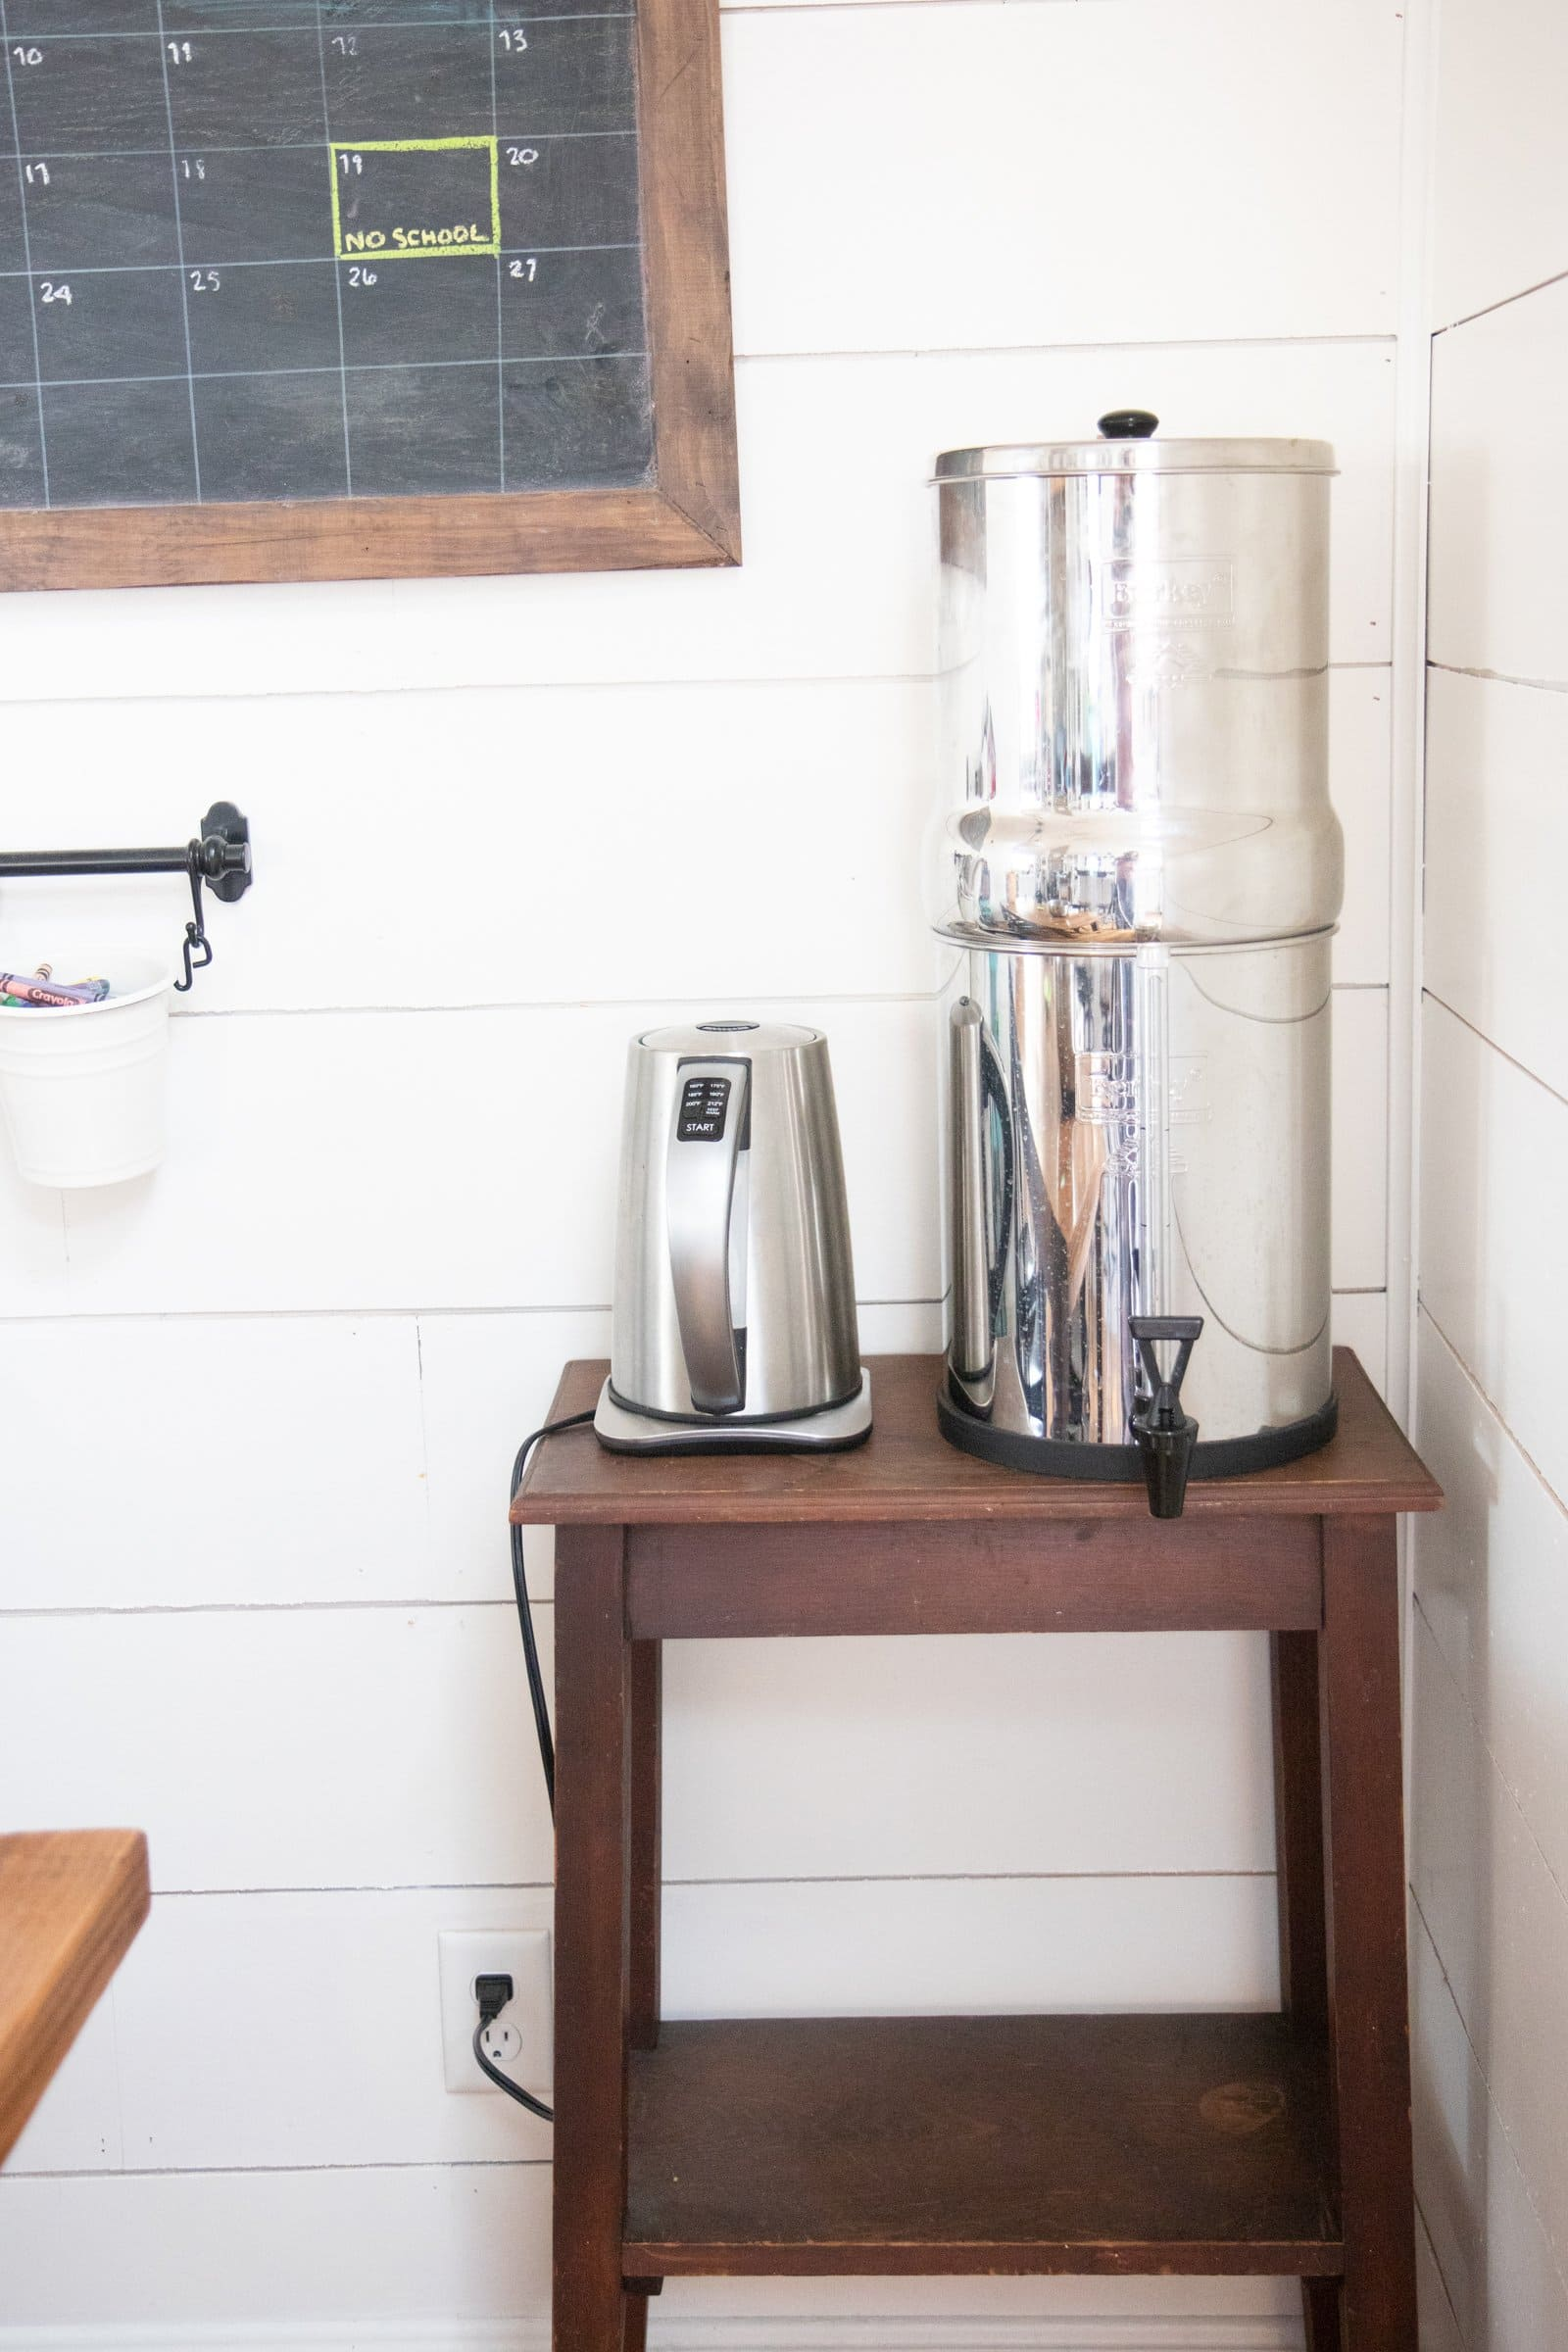 A stainless steel water filter next to an electric tea kettle on a small wooden table.